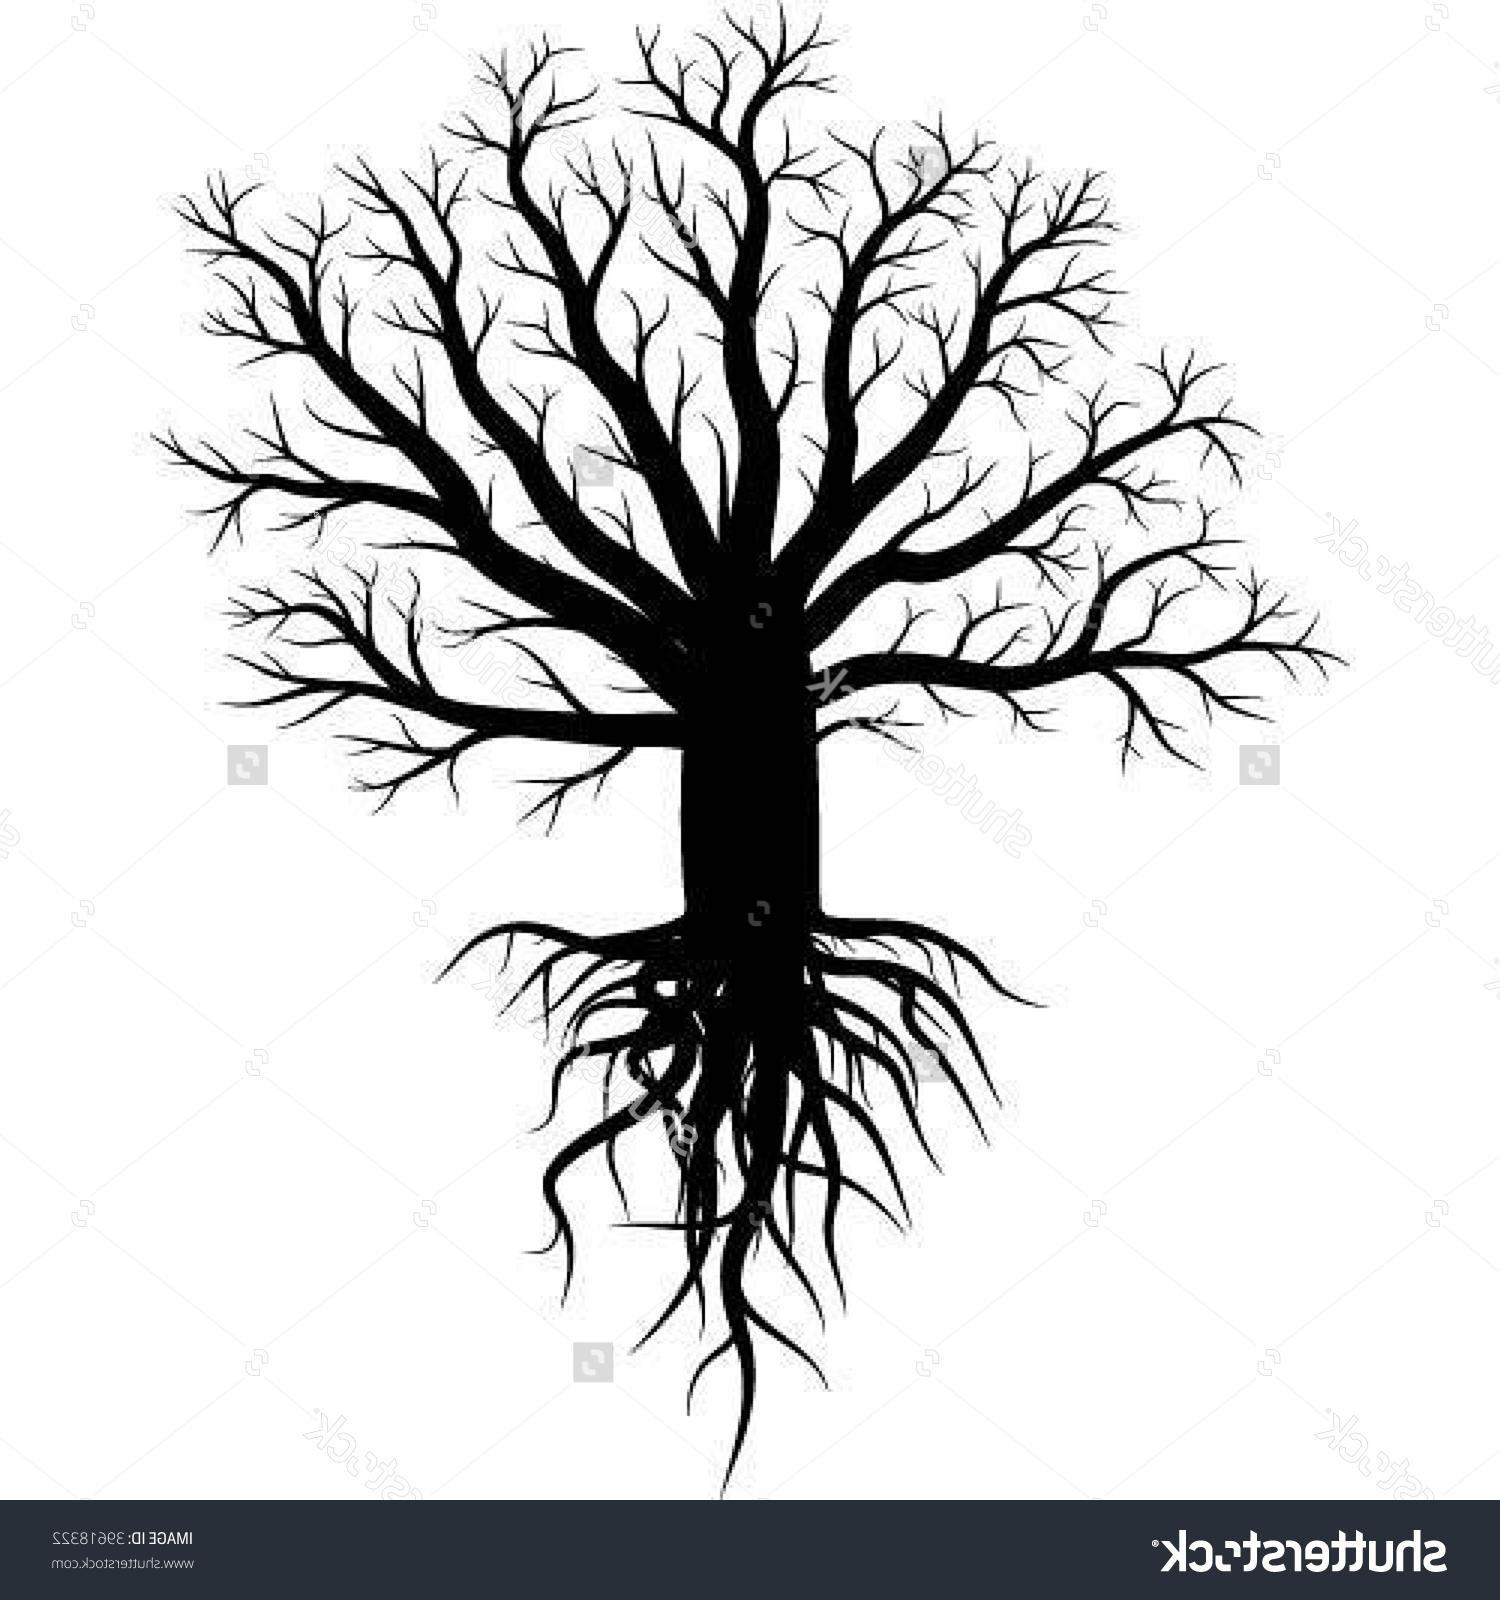 1500x1600 Top 10 Stock Vector Silhouette Of Leafless Tree With Root System